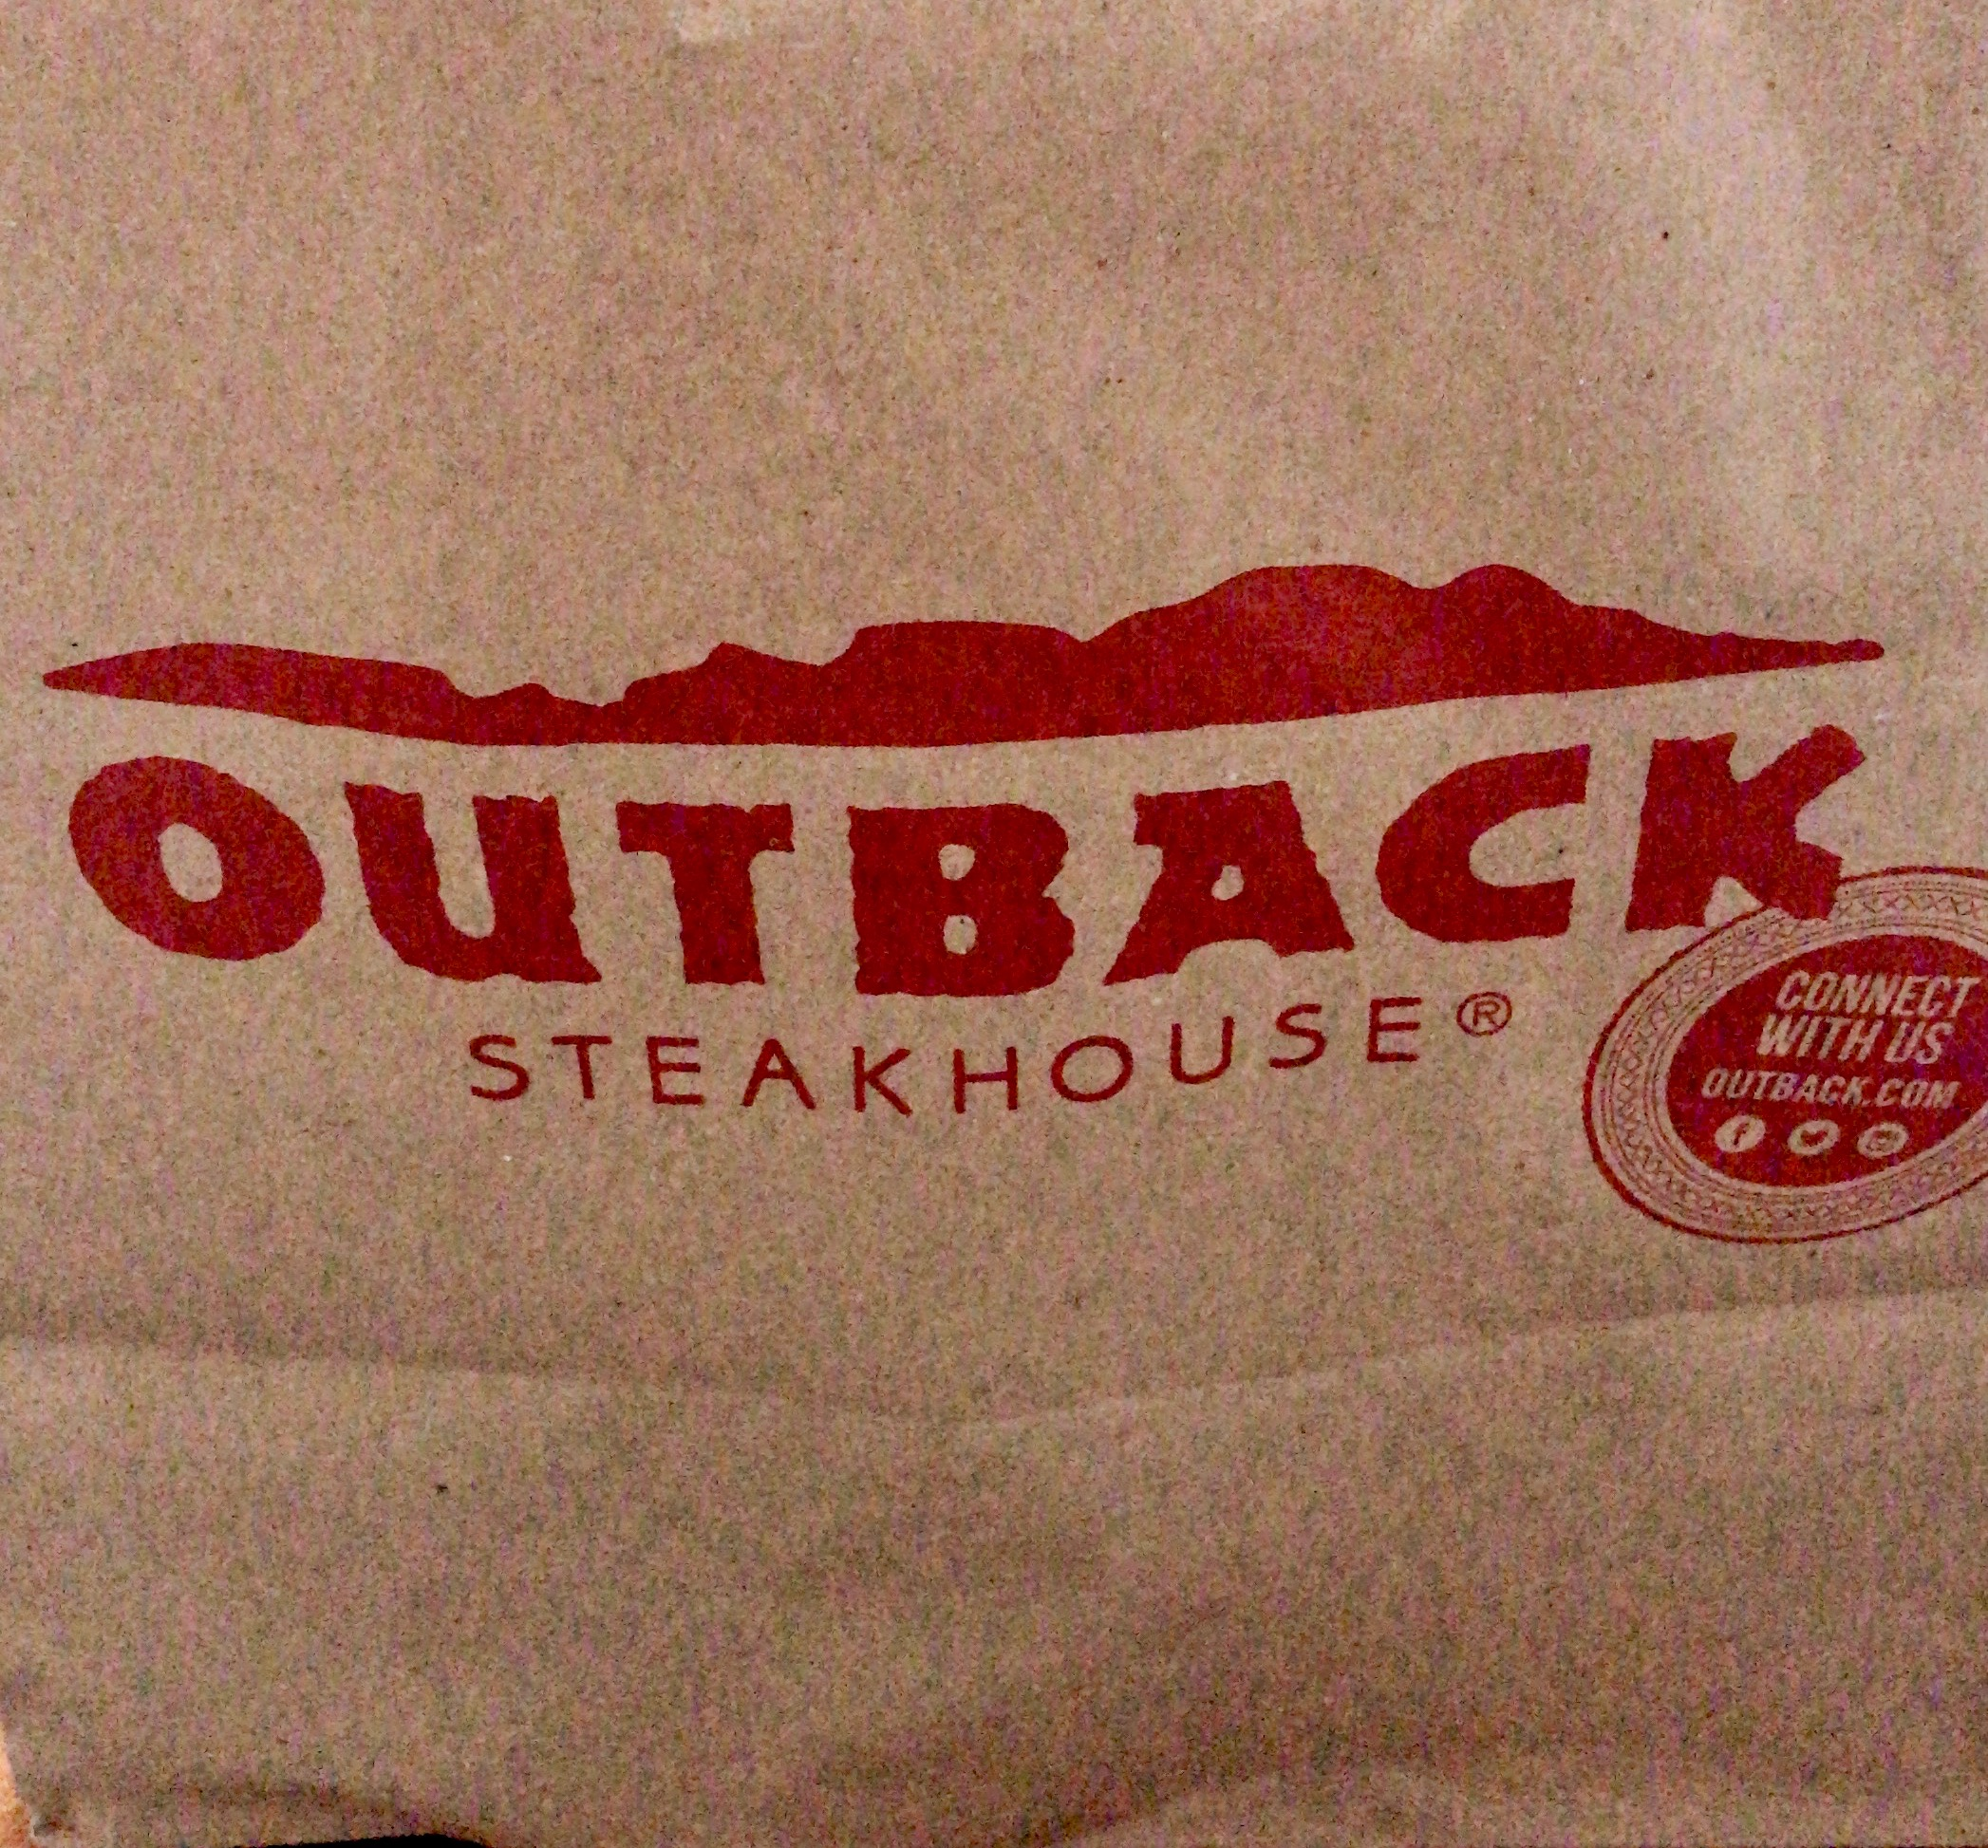 What to Order at Outback if You Have Dietary Restrictions